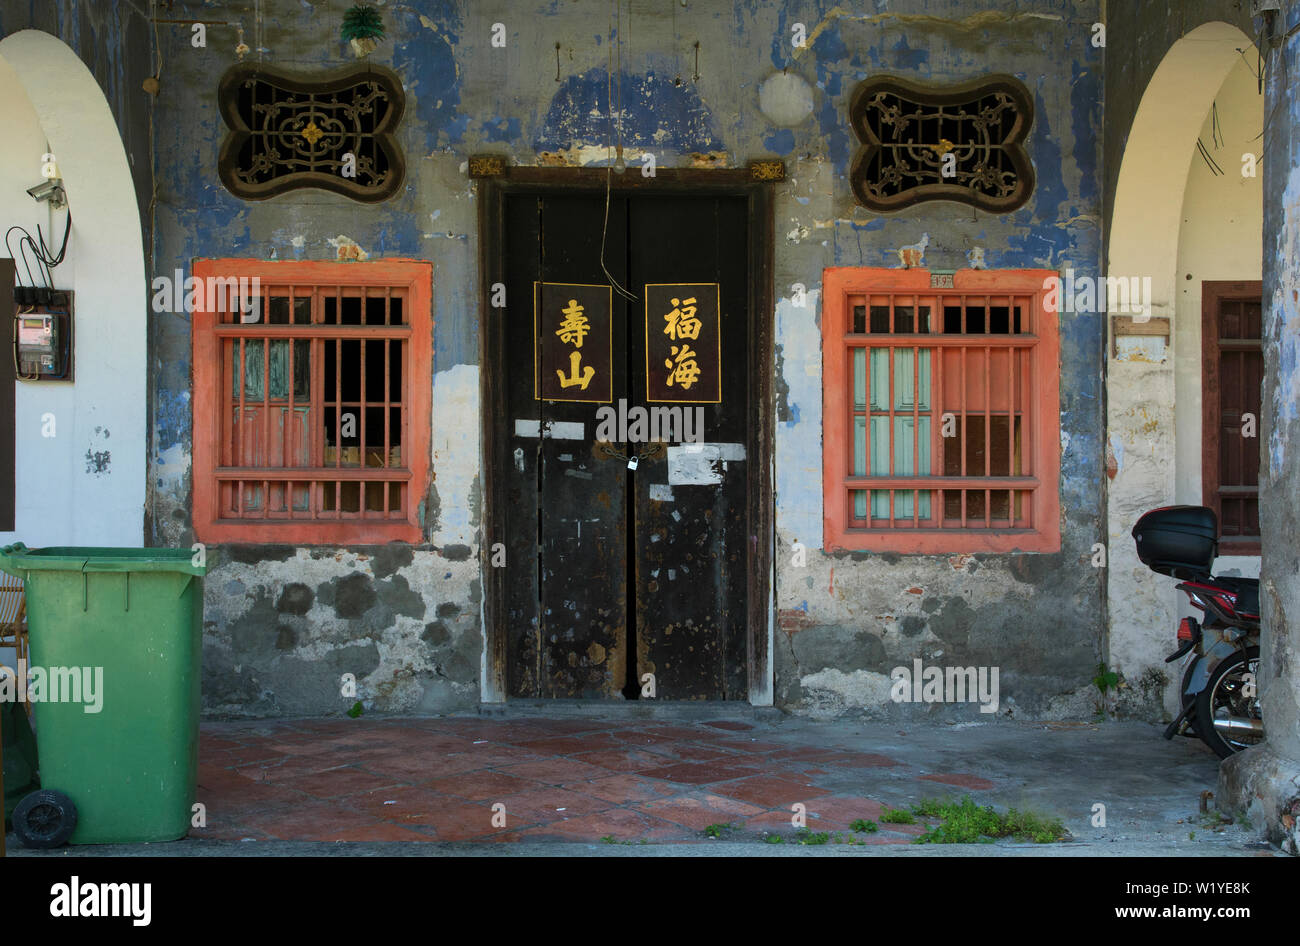 george town, penang/malaysia - february 24, 2017:  facade, wooden door and windows of a traditional chinese shophouse, five foot walk way - Stock Image